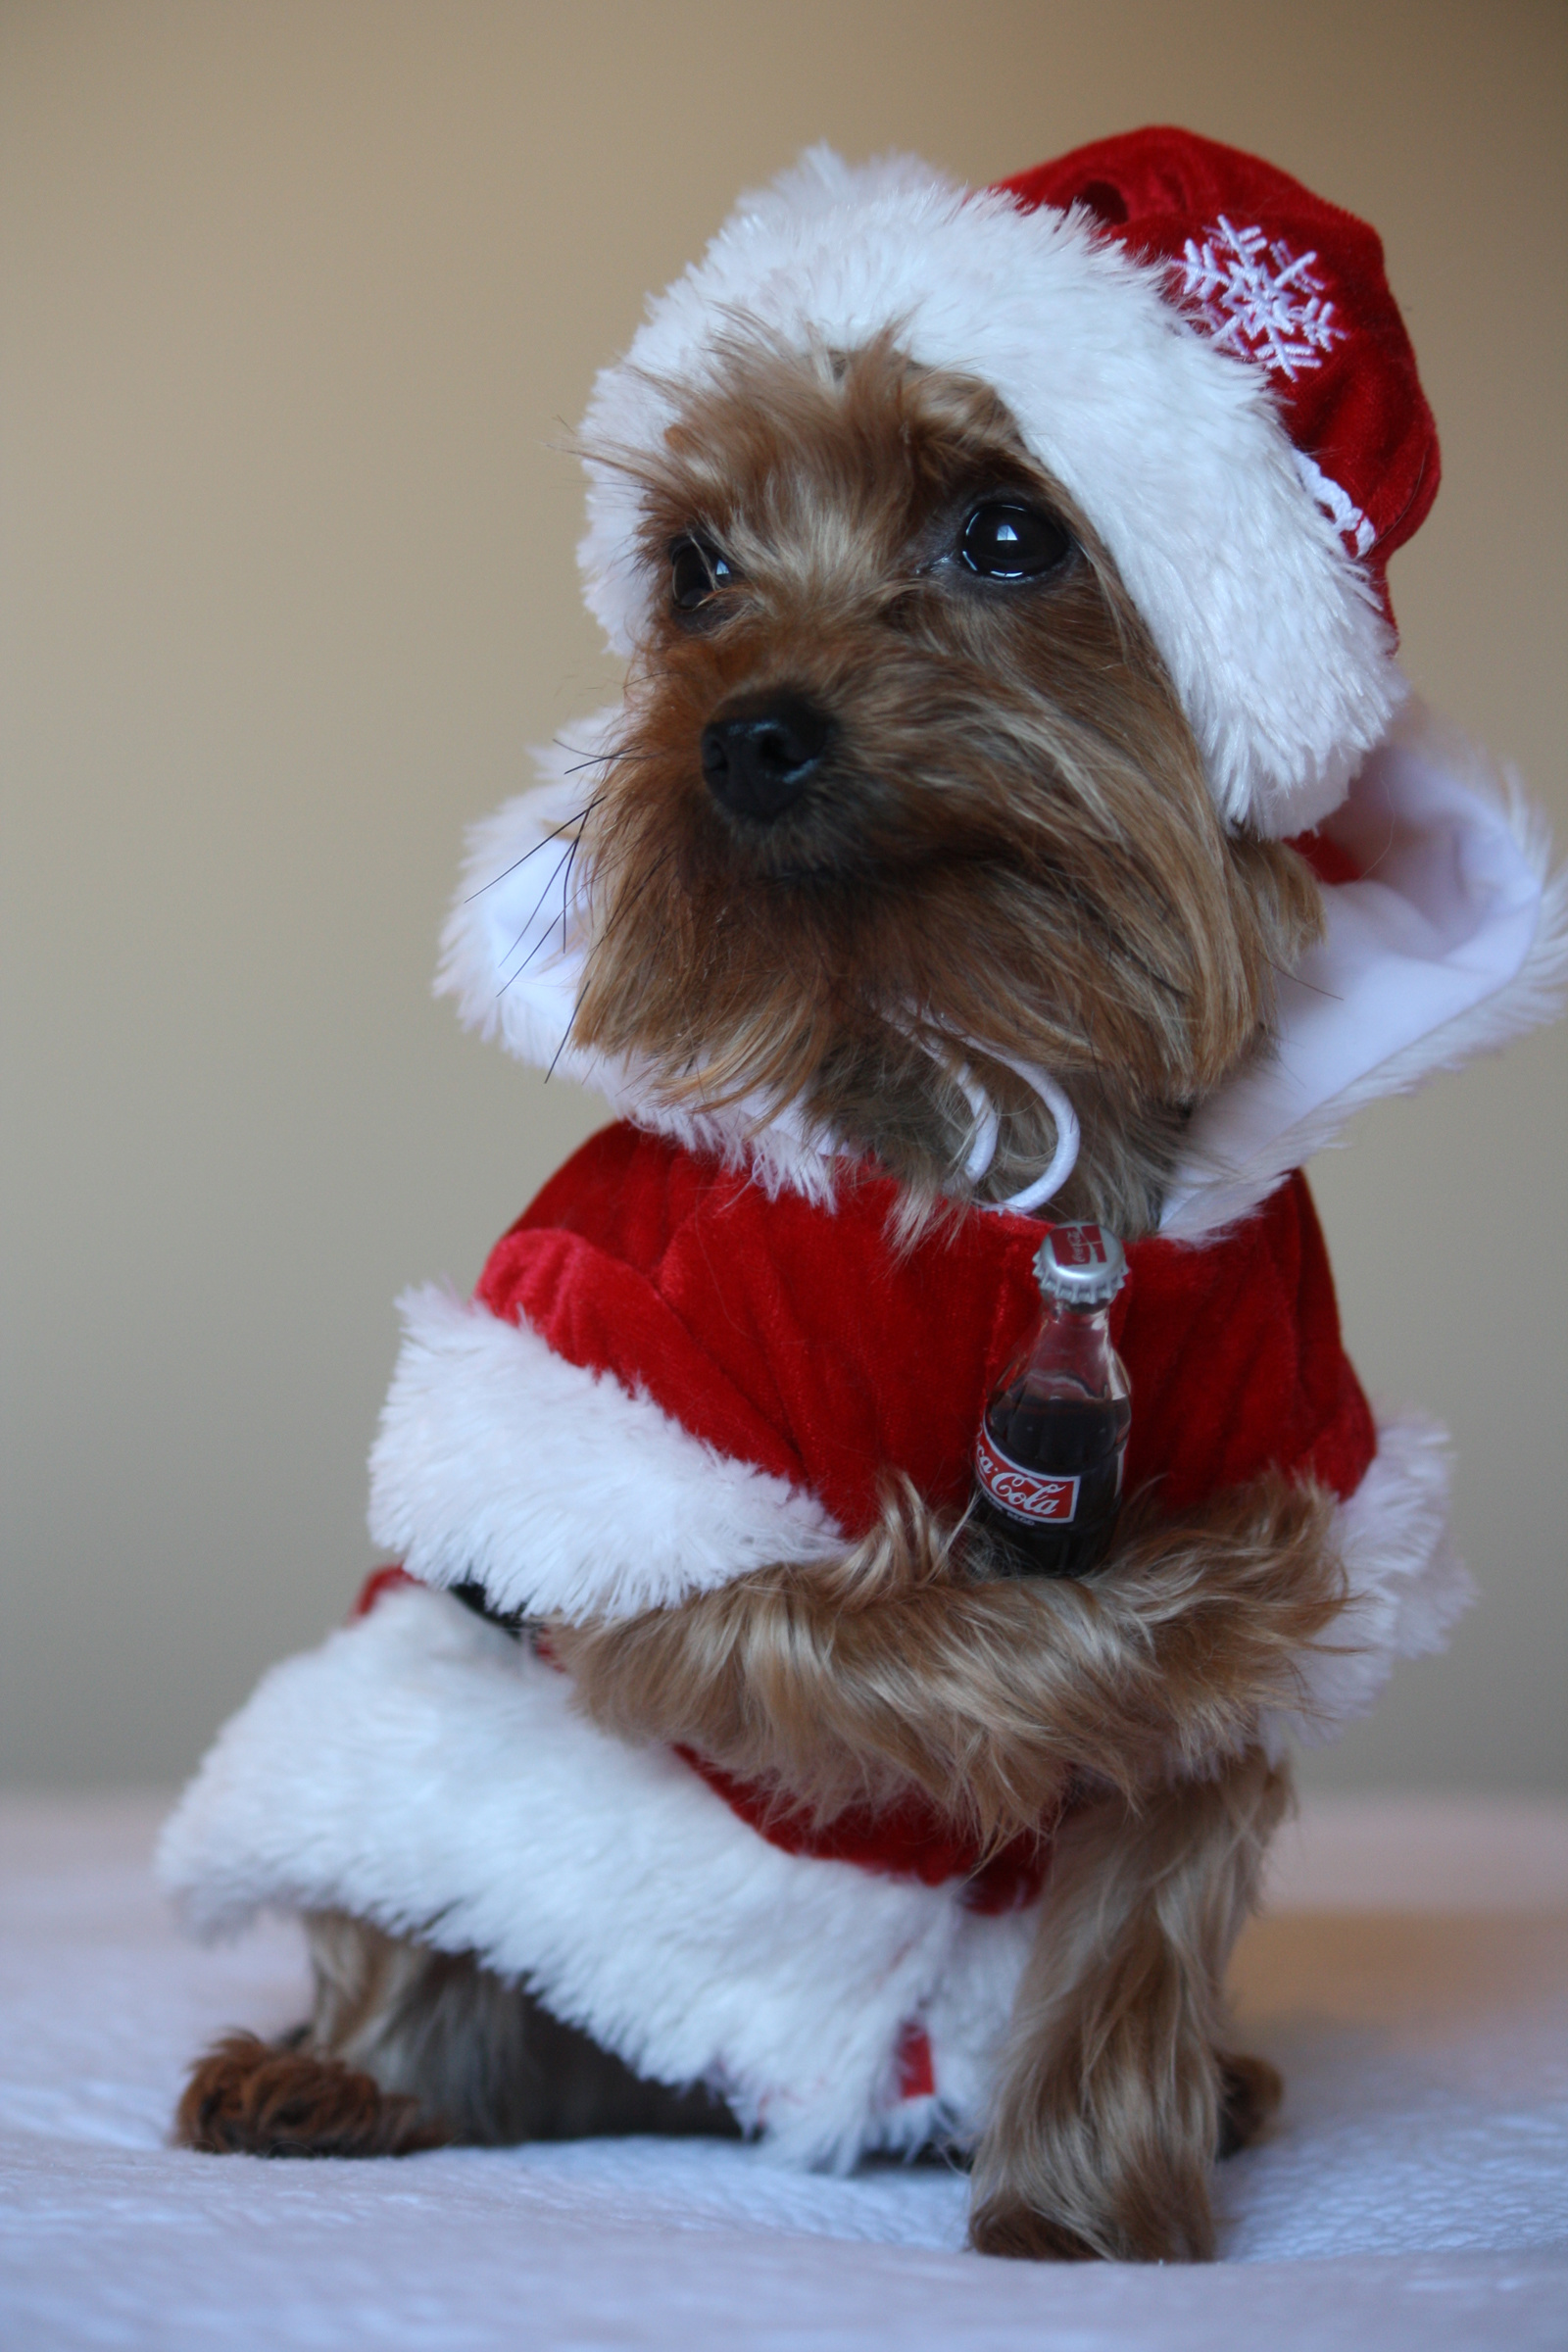 Images Coca-Cola Yorkshire terrier dog New year Winter hat Santa Claus Uniform Animals  for Mobile phone Dogs Christmas animal